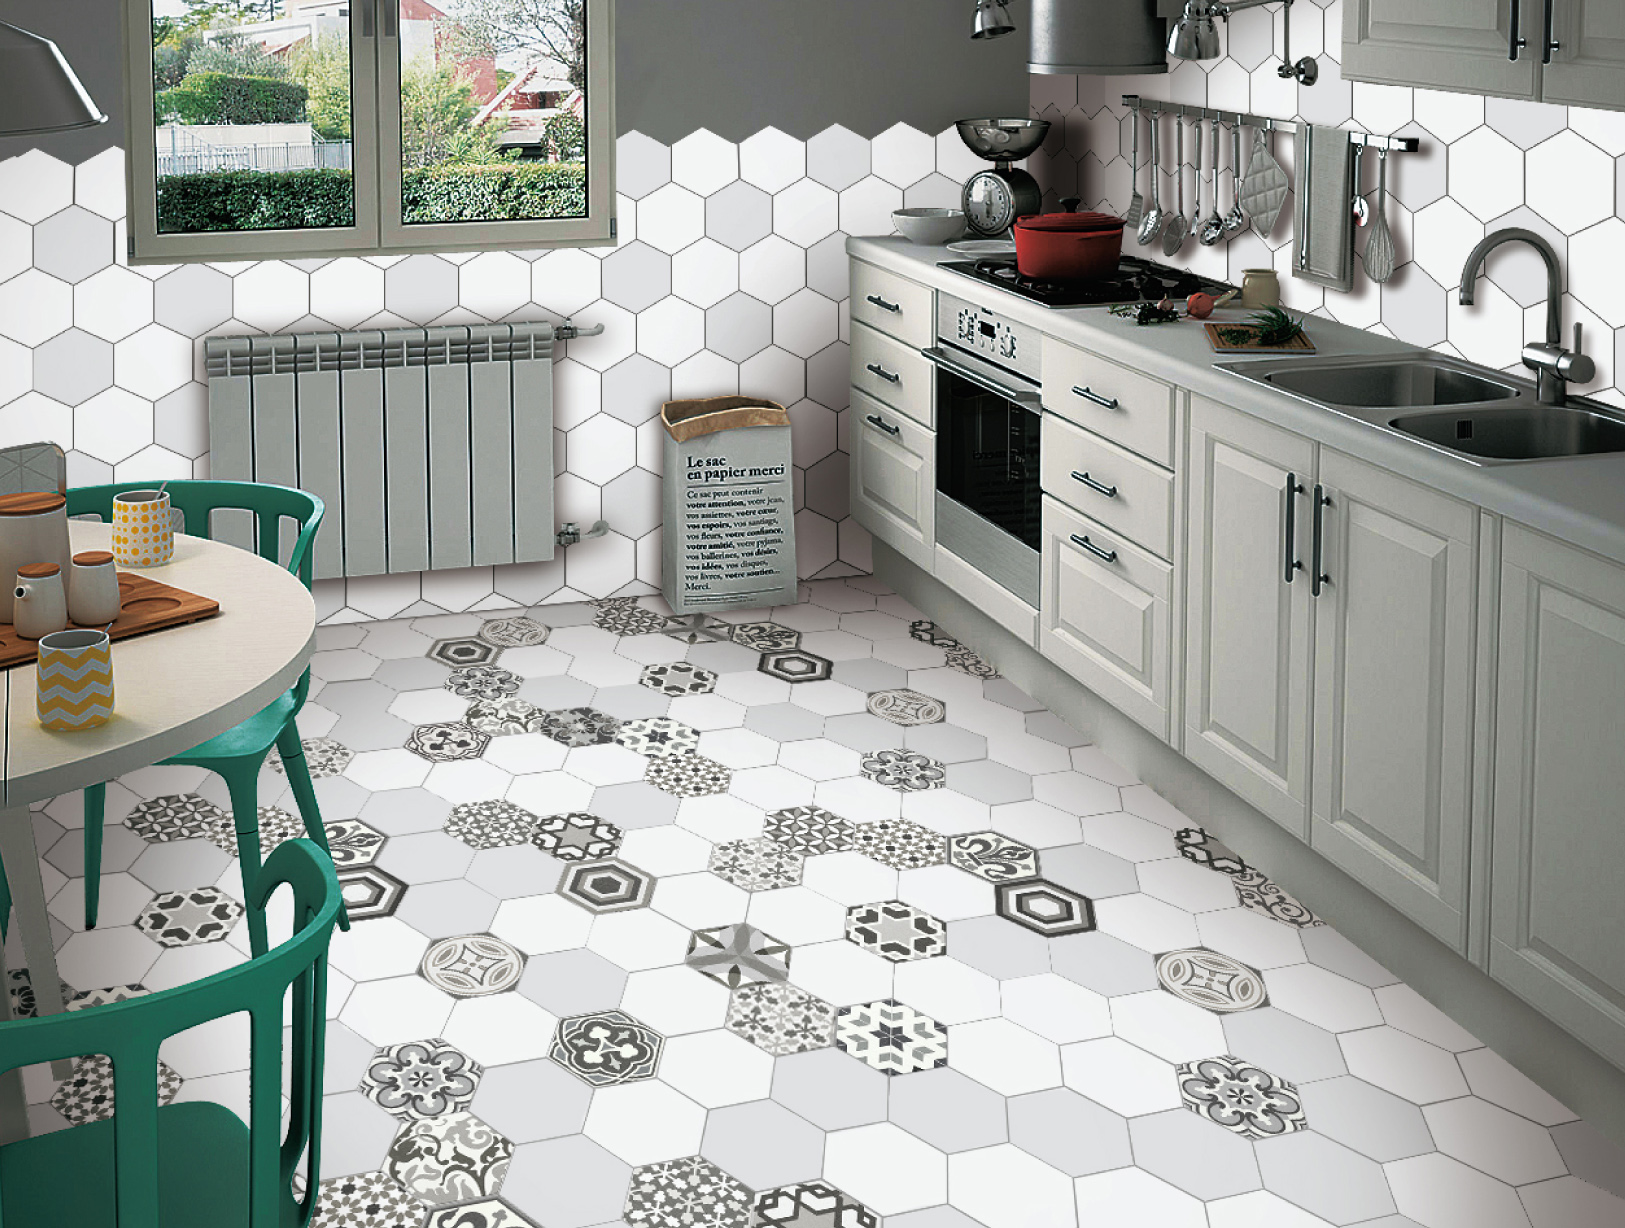 Teach You the Right Methods to Maintain Ceramic Tiles